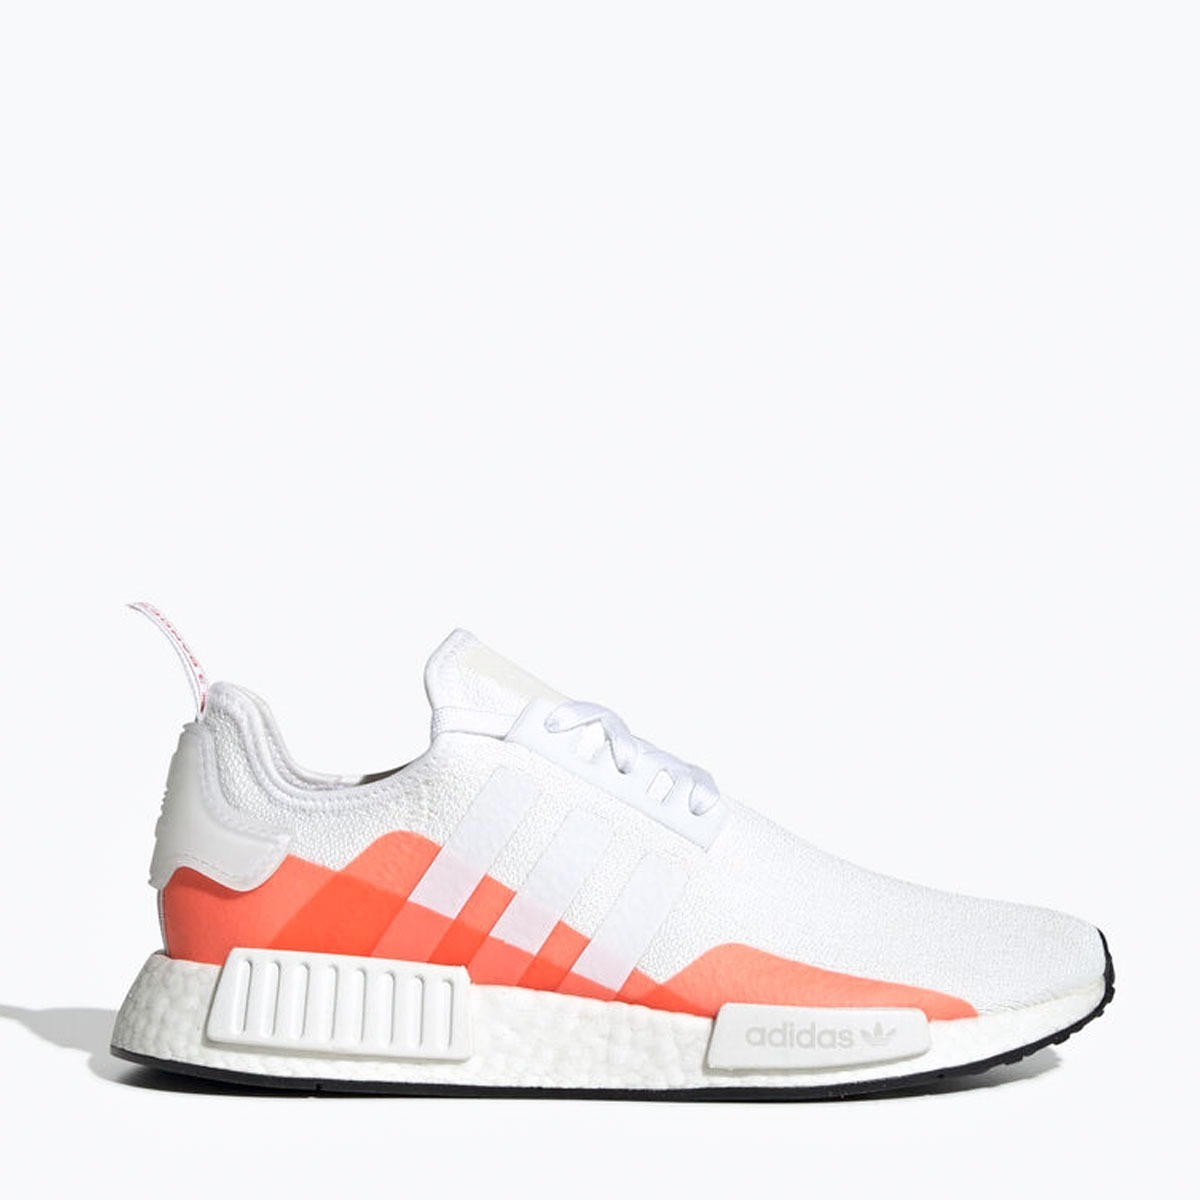 Zapatillas adidas Originals Nmd_r1 Ee5082 (5083)